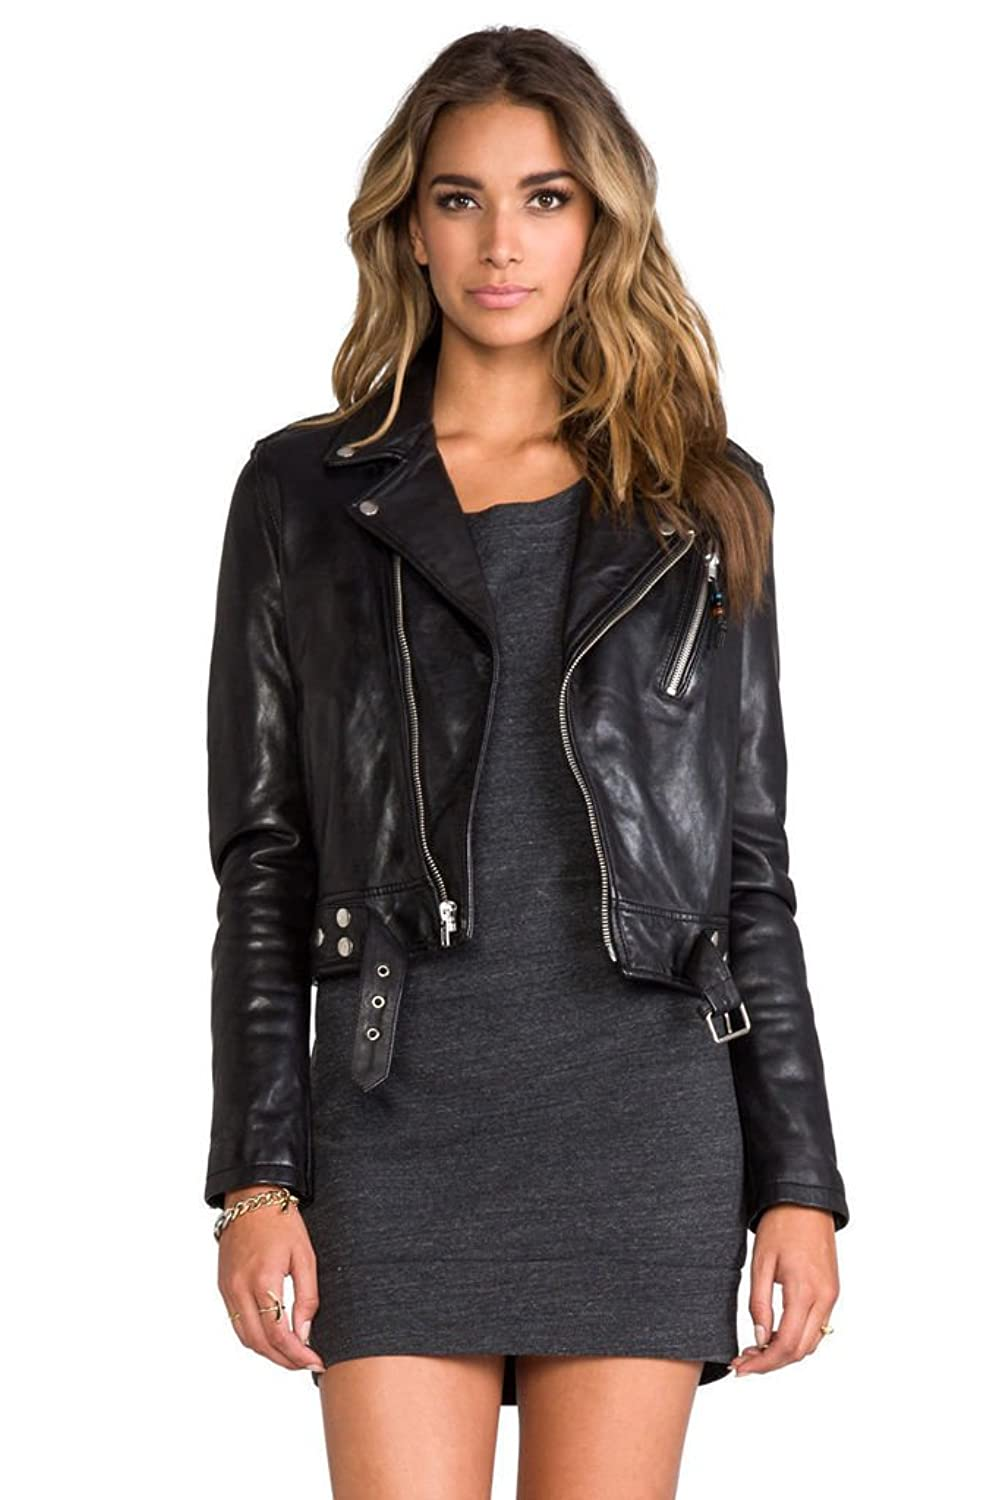 Invest in a foundation piece with one of our women's leather jackets. Choose from buttery soft designs in smooth, textured or pebbled leather - stitched panels and metal hardware add a rugged feel.